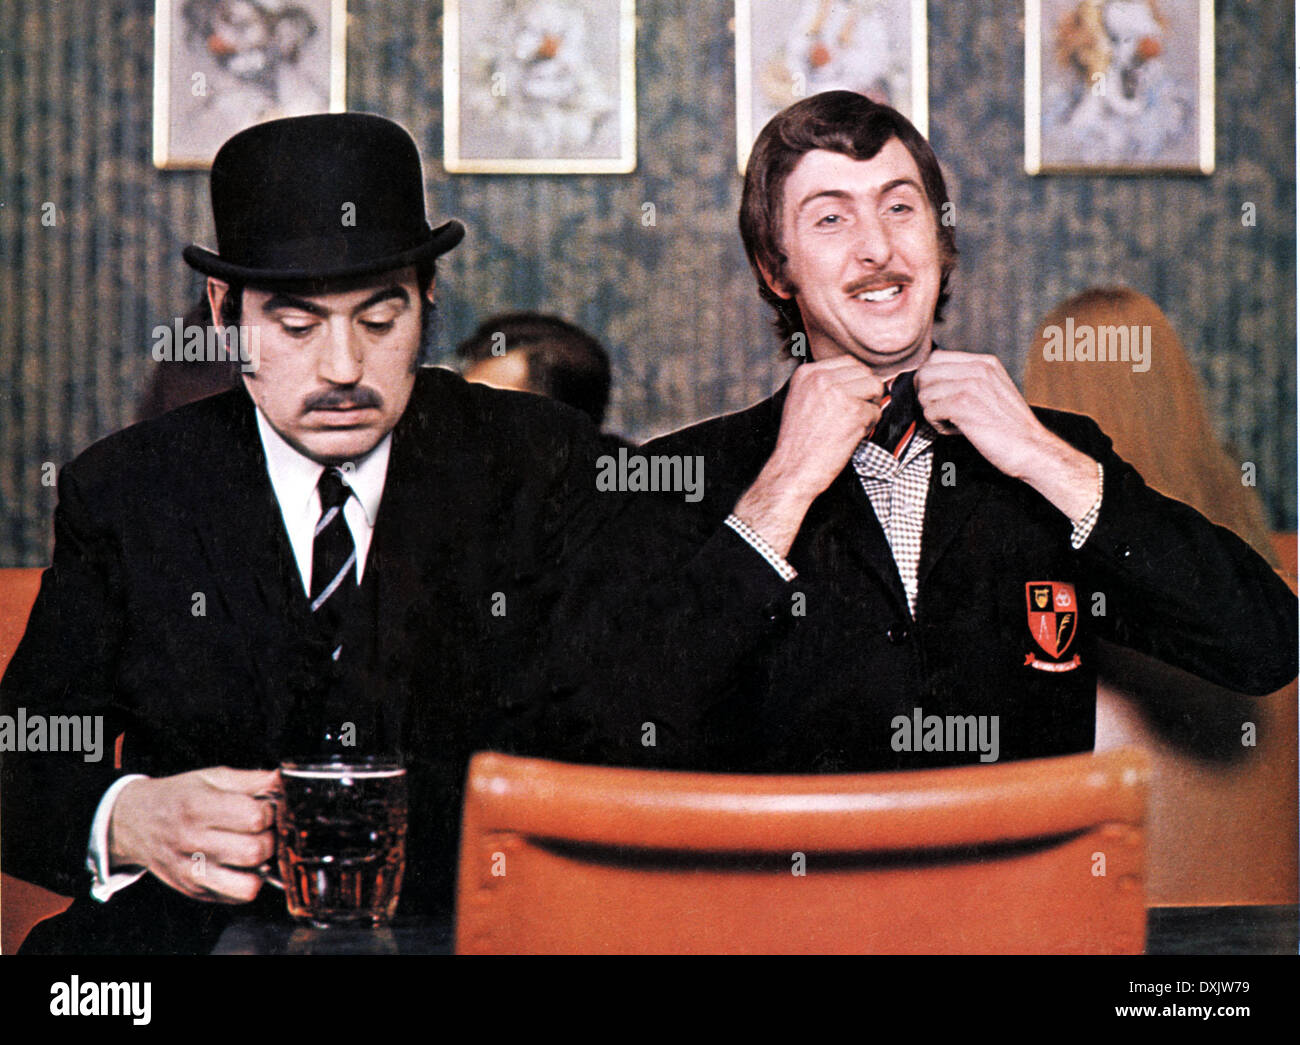 Monty Python's And Now for Something Completely Different (B - Stock Image